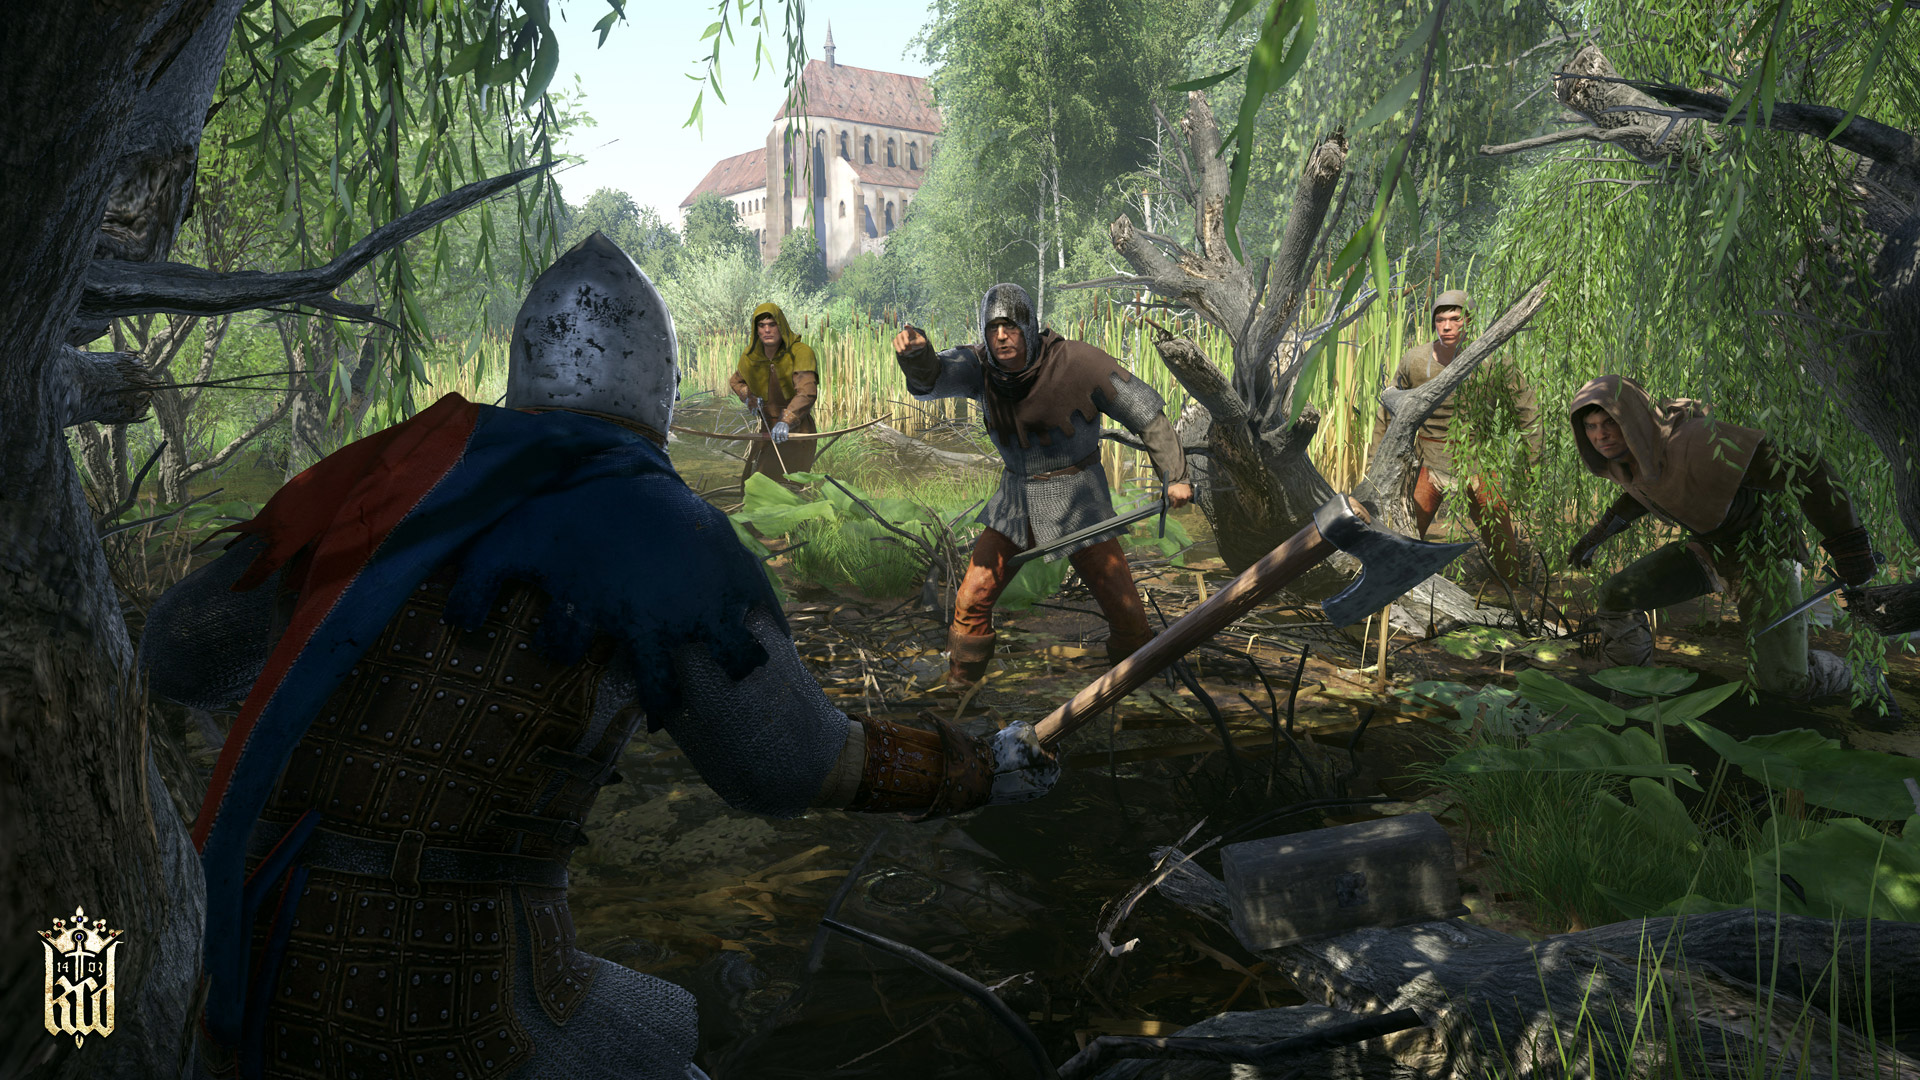 Kingdom Come: Deliverance Wallpaper in 1920x1080